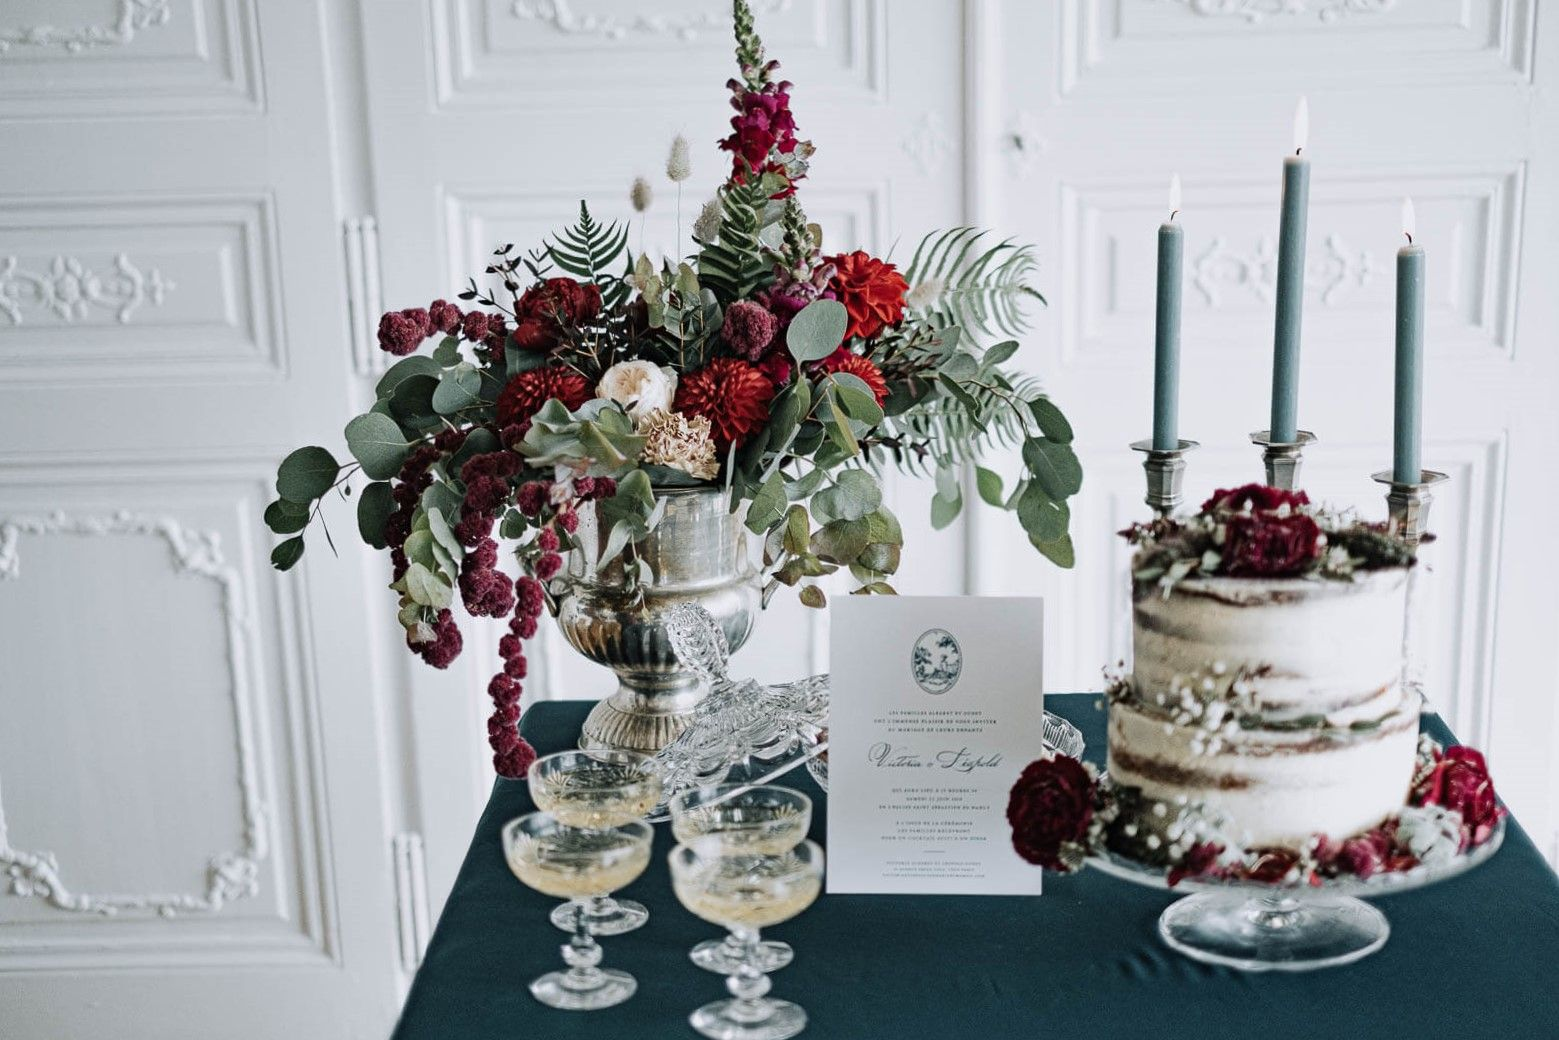 Sweet-table-wedding-cake-décoration-table-mariage-dessert